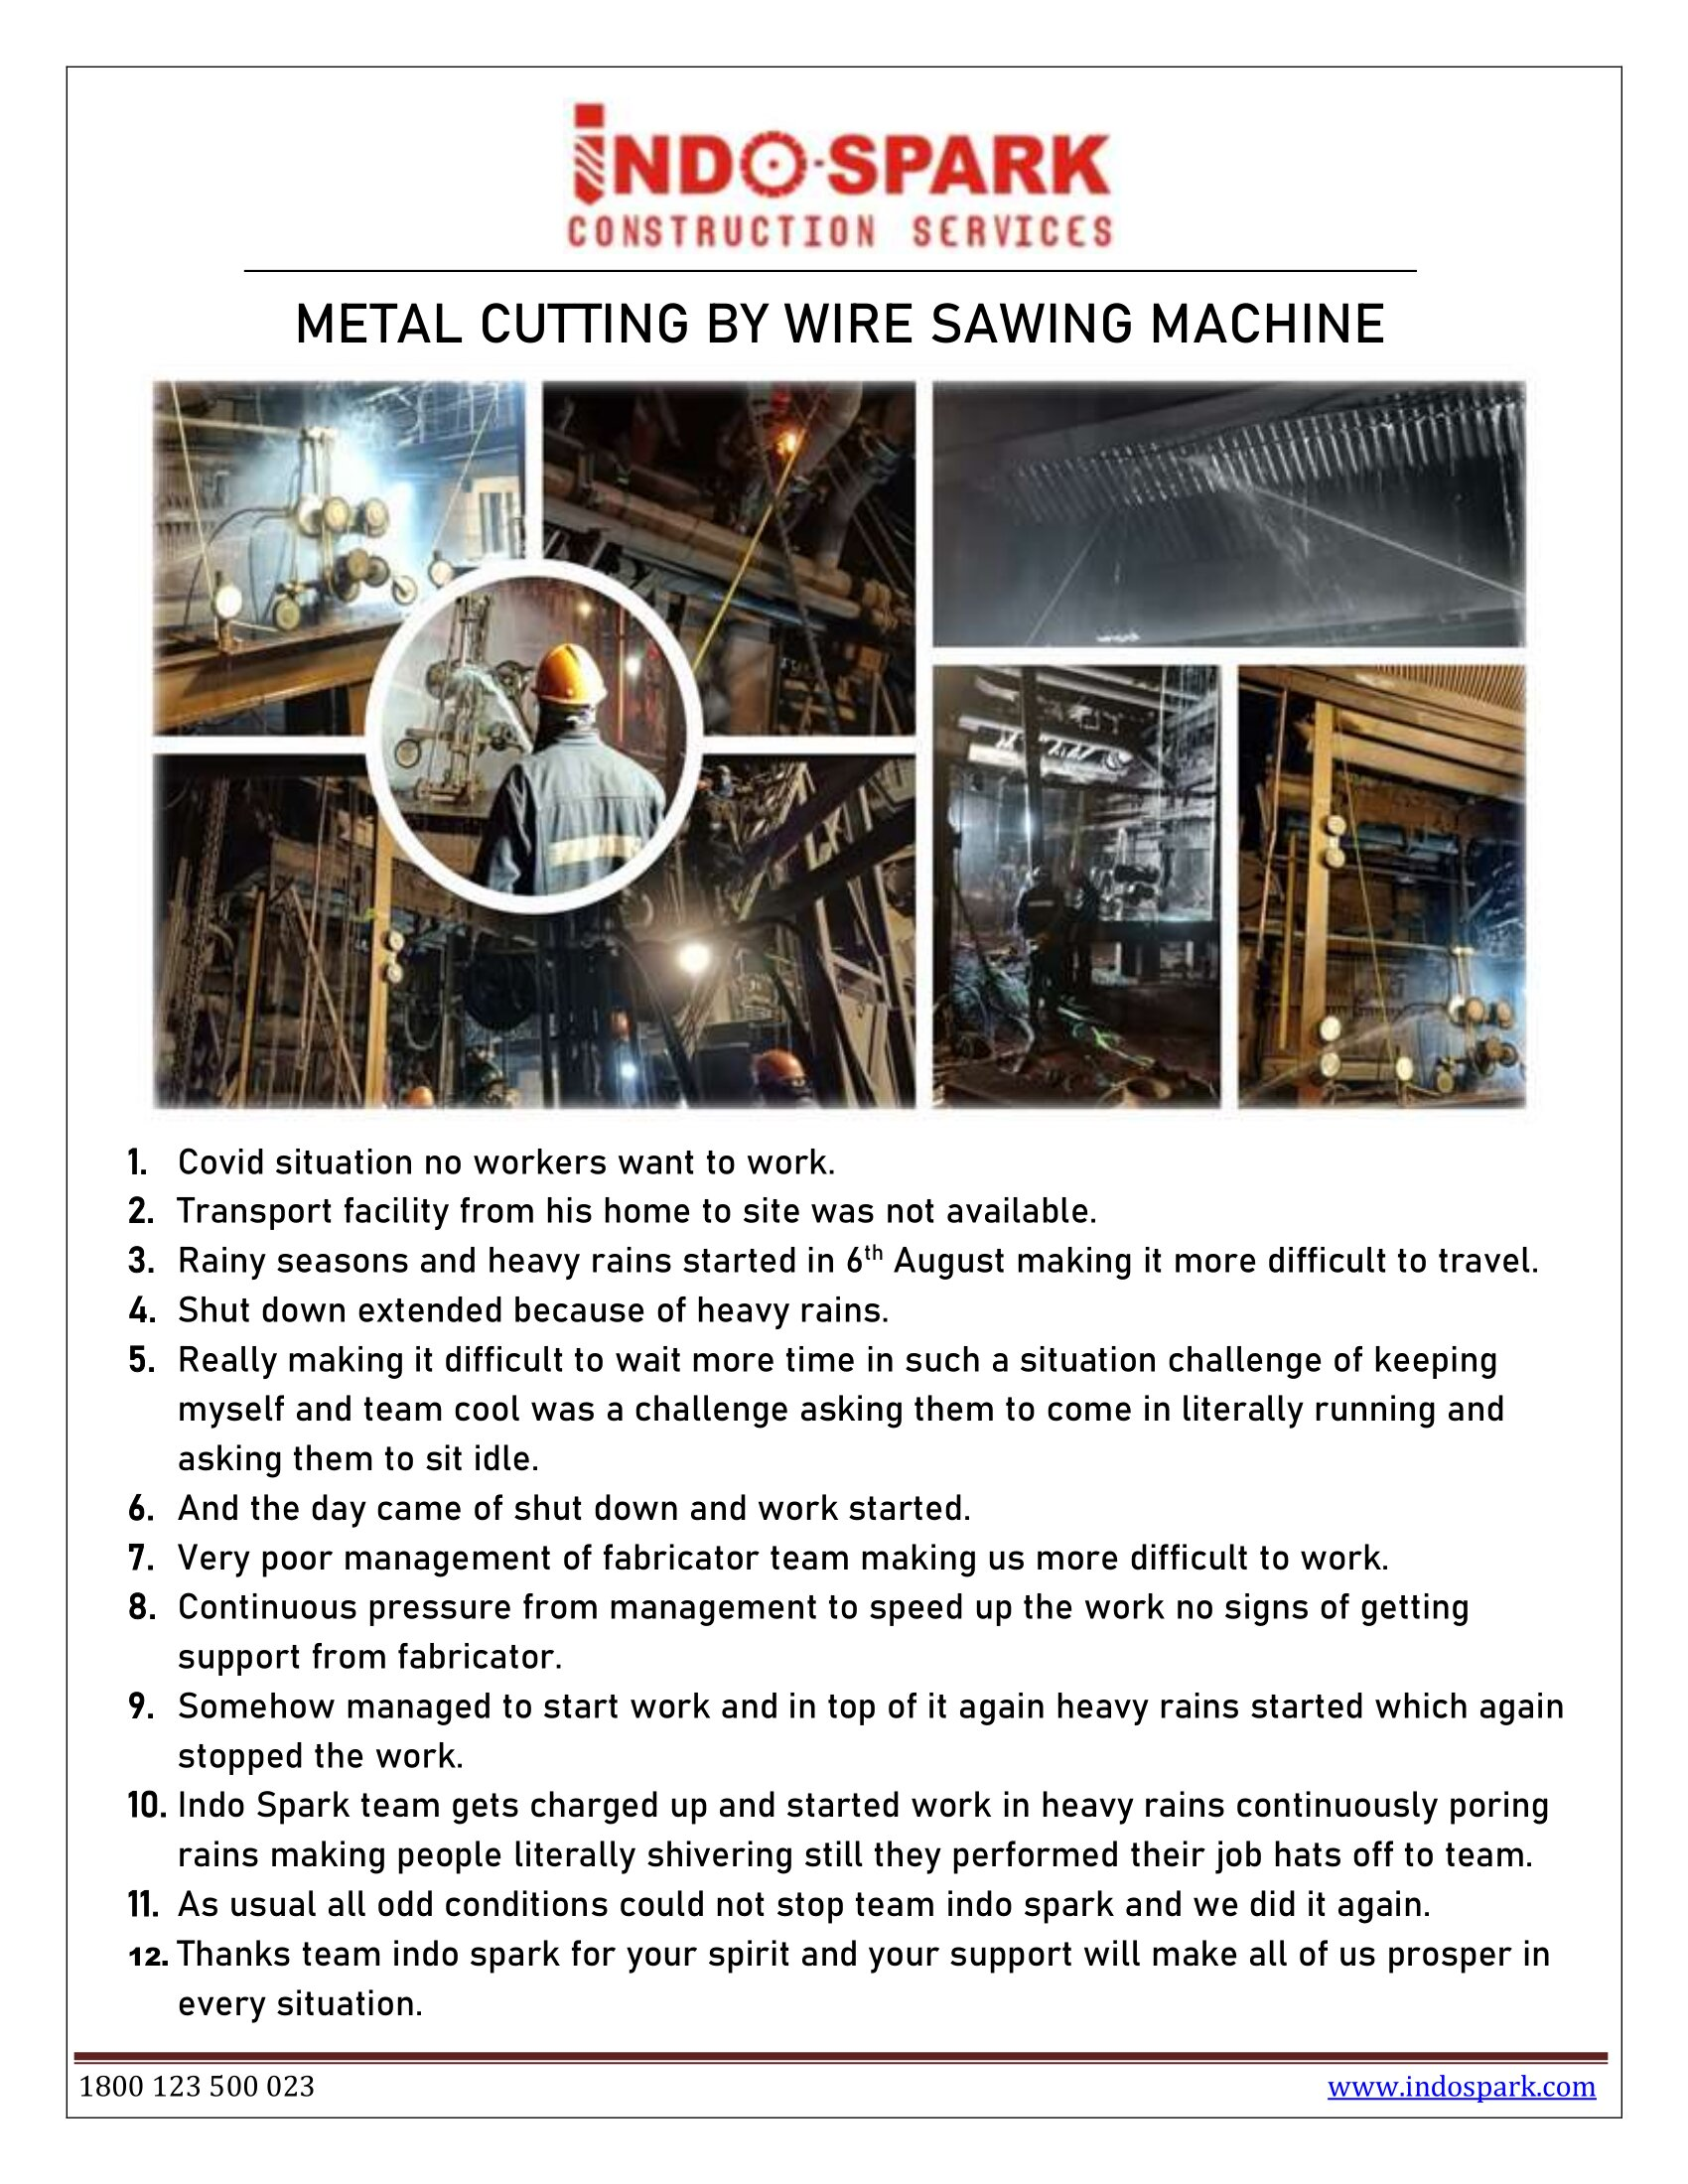 METAL CUTTING BY WIRE SAWING MACHINE_082020